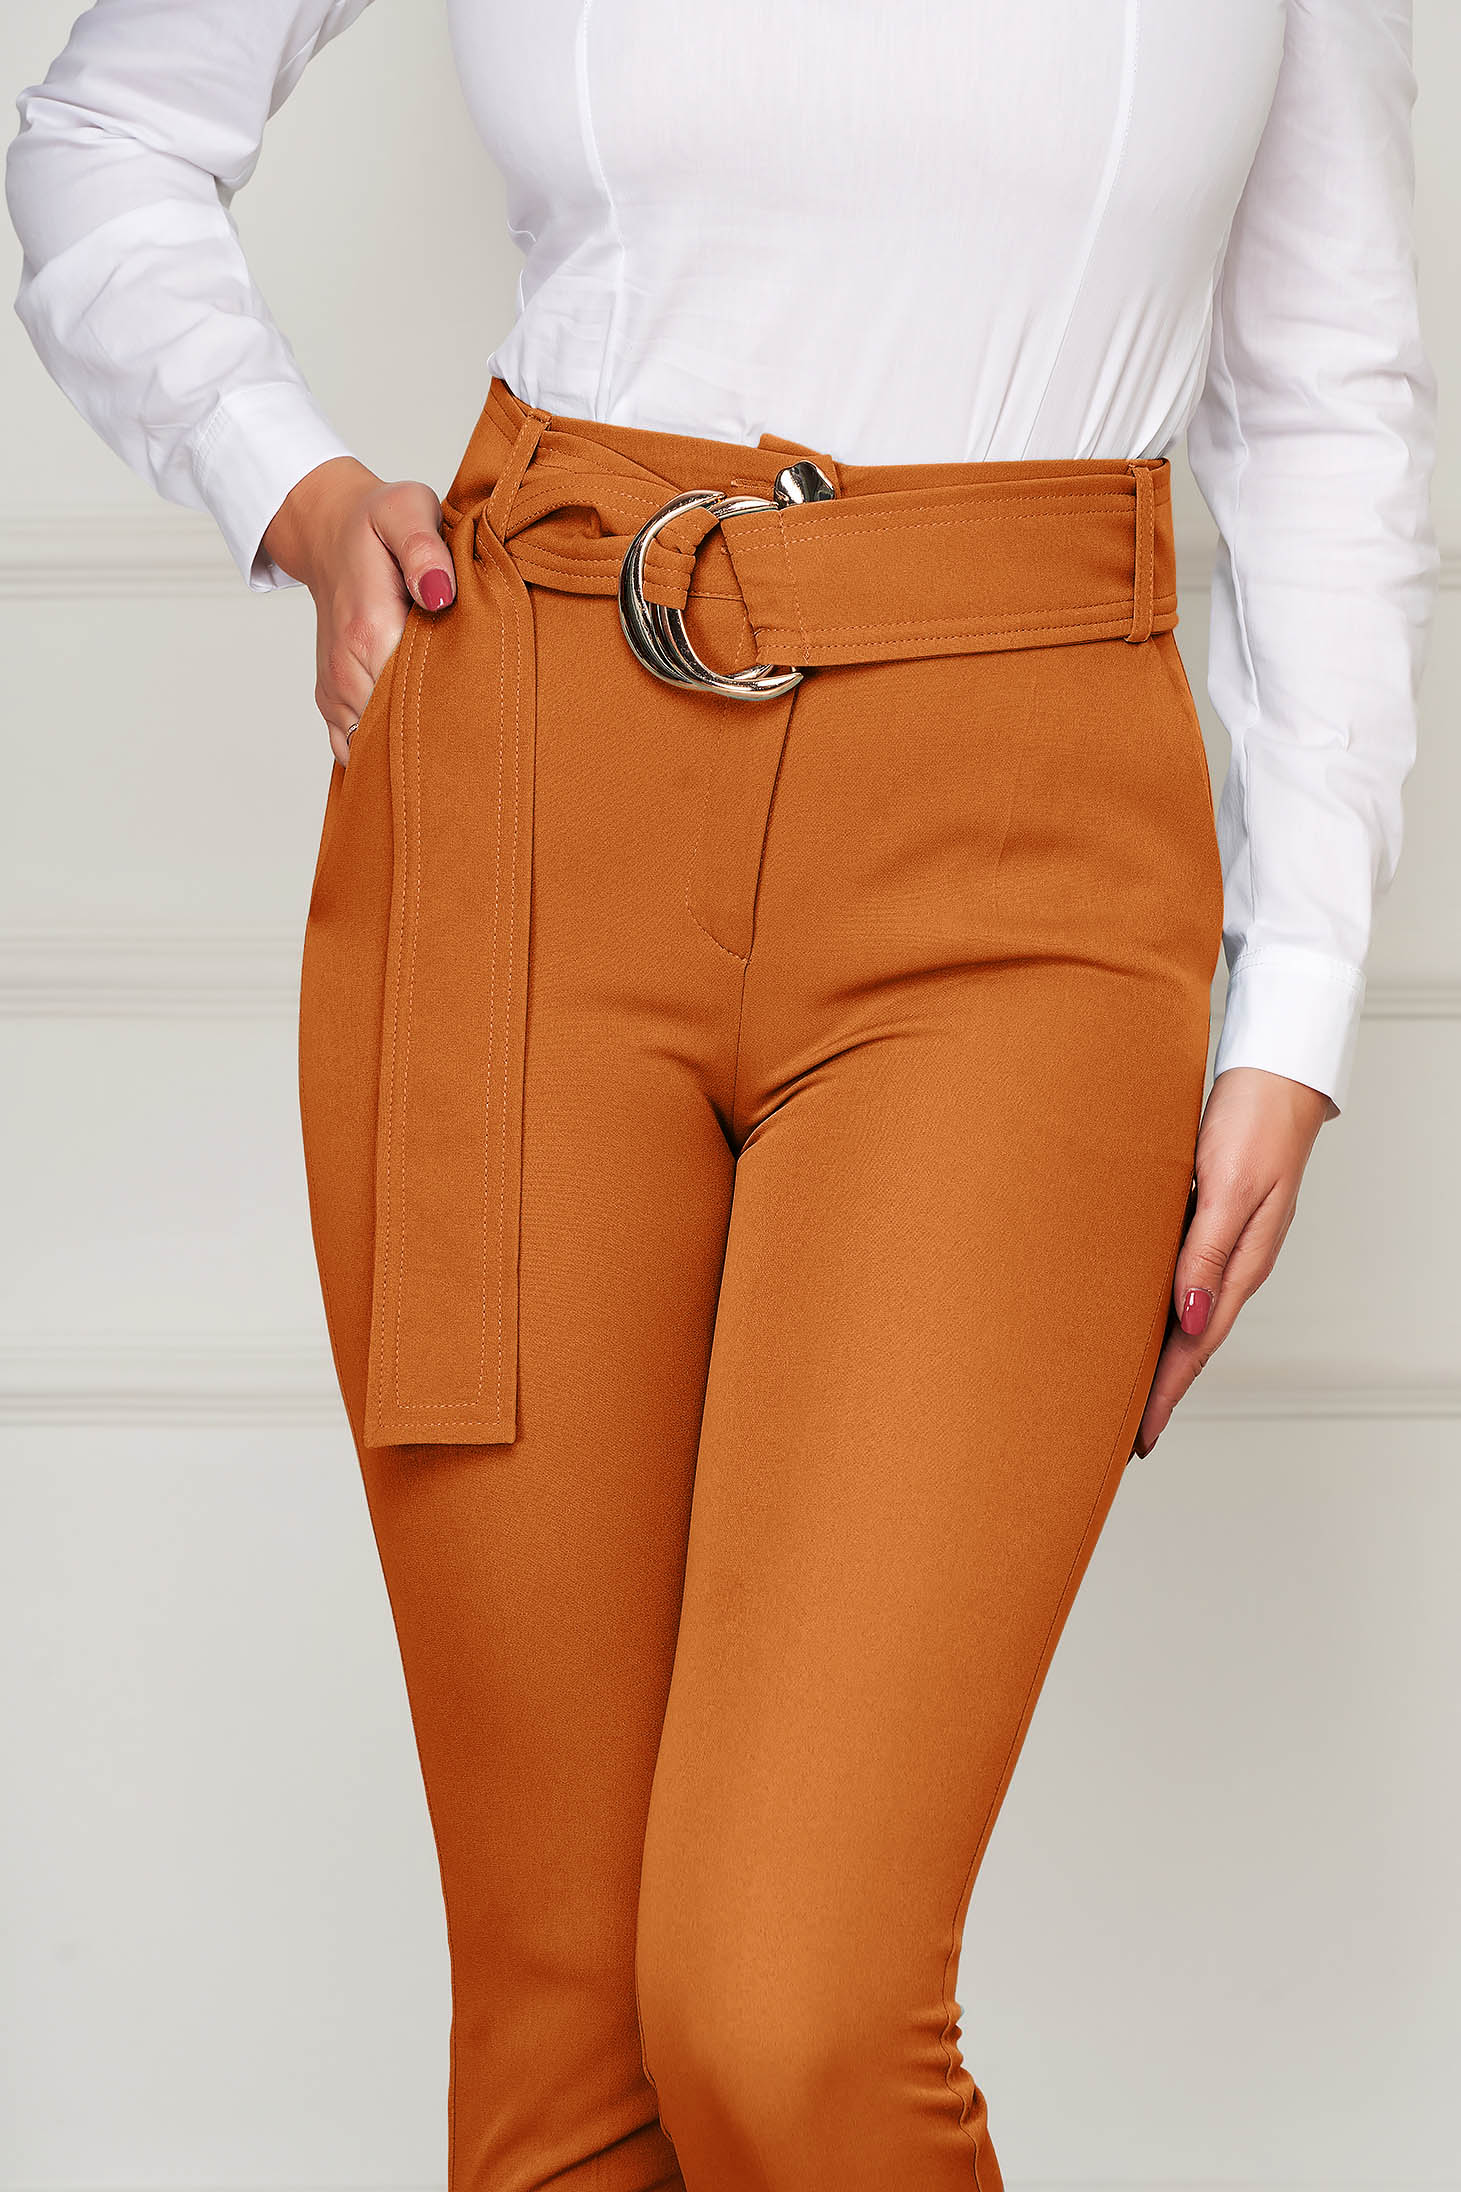 Trousers bricky elegant conical high waisted slightly elastic fabric